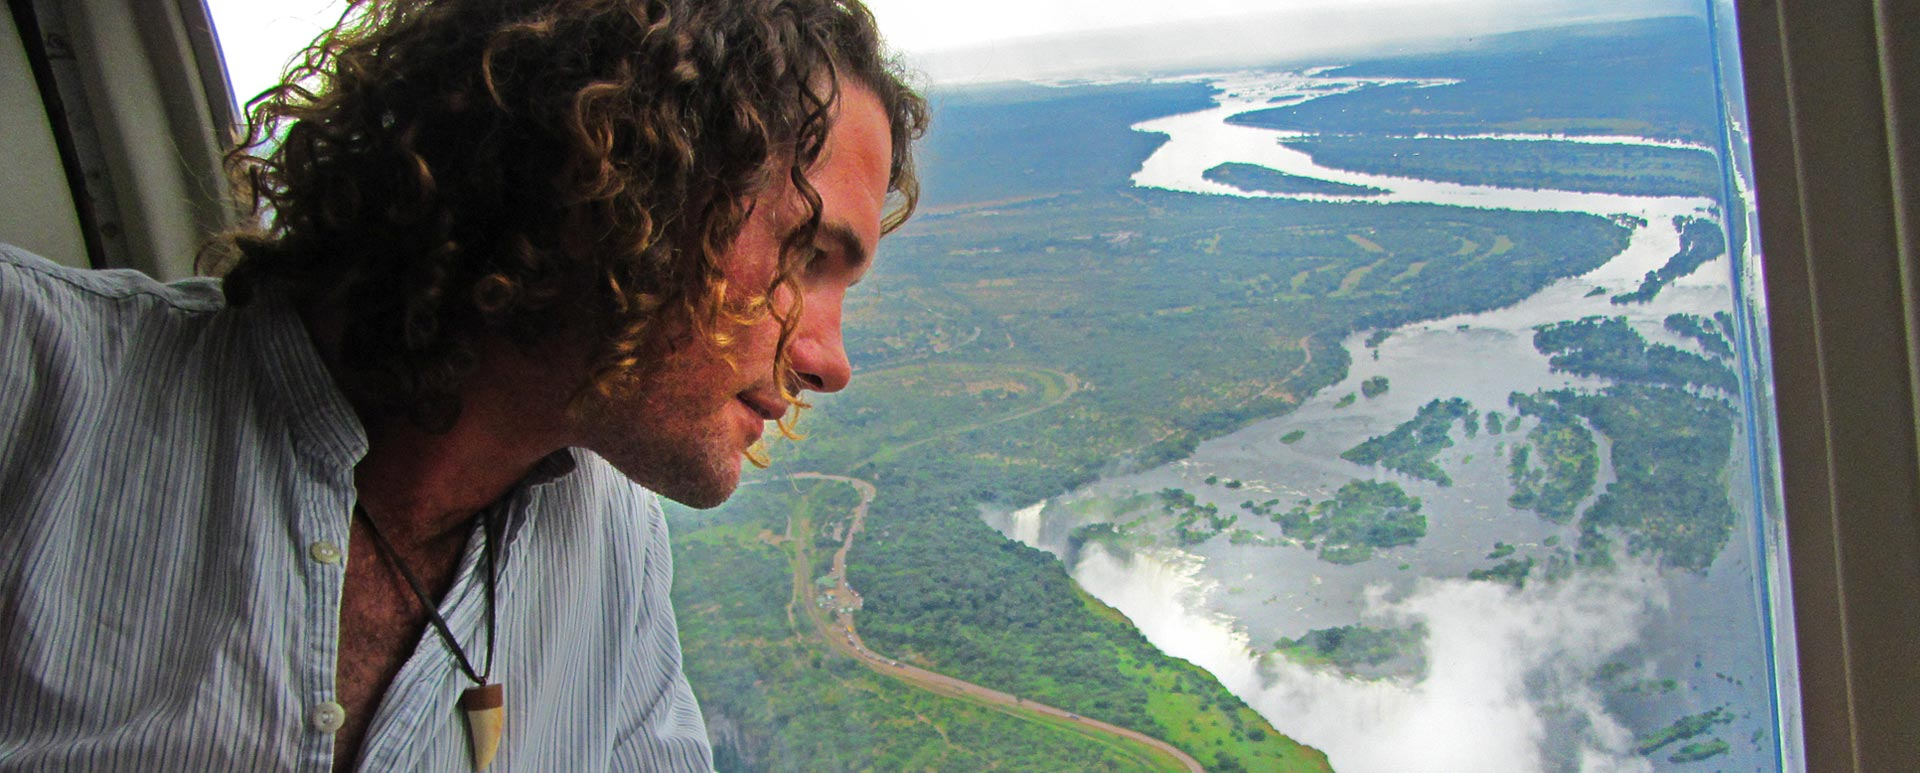 Victoria Falls Helicopter Flight View